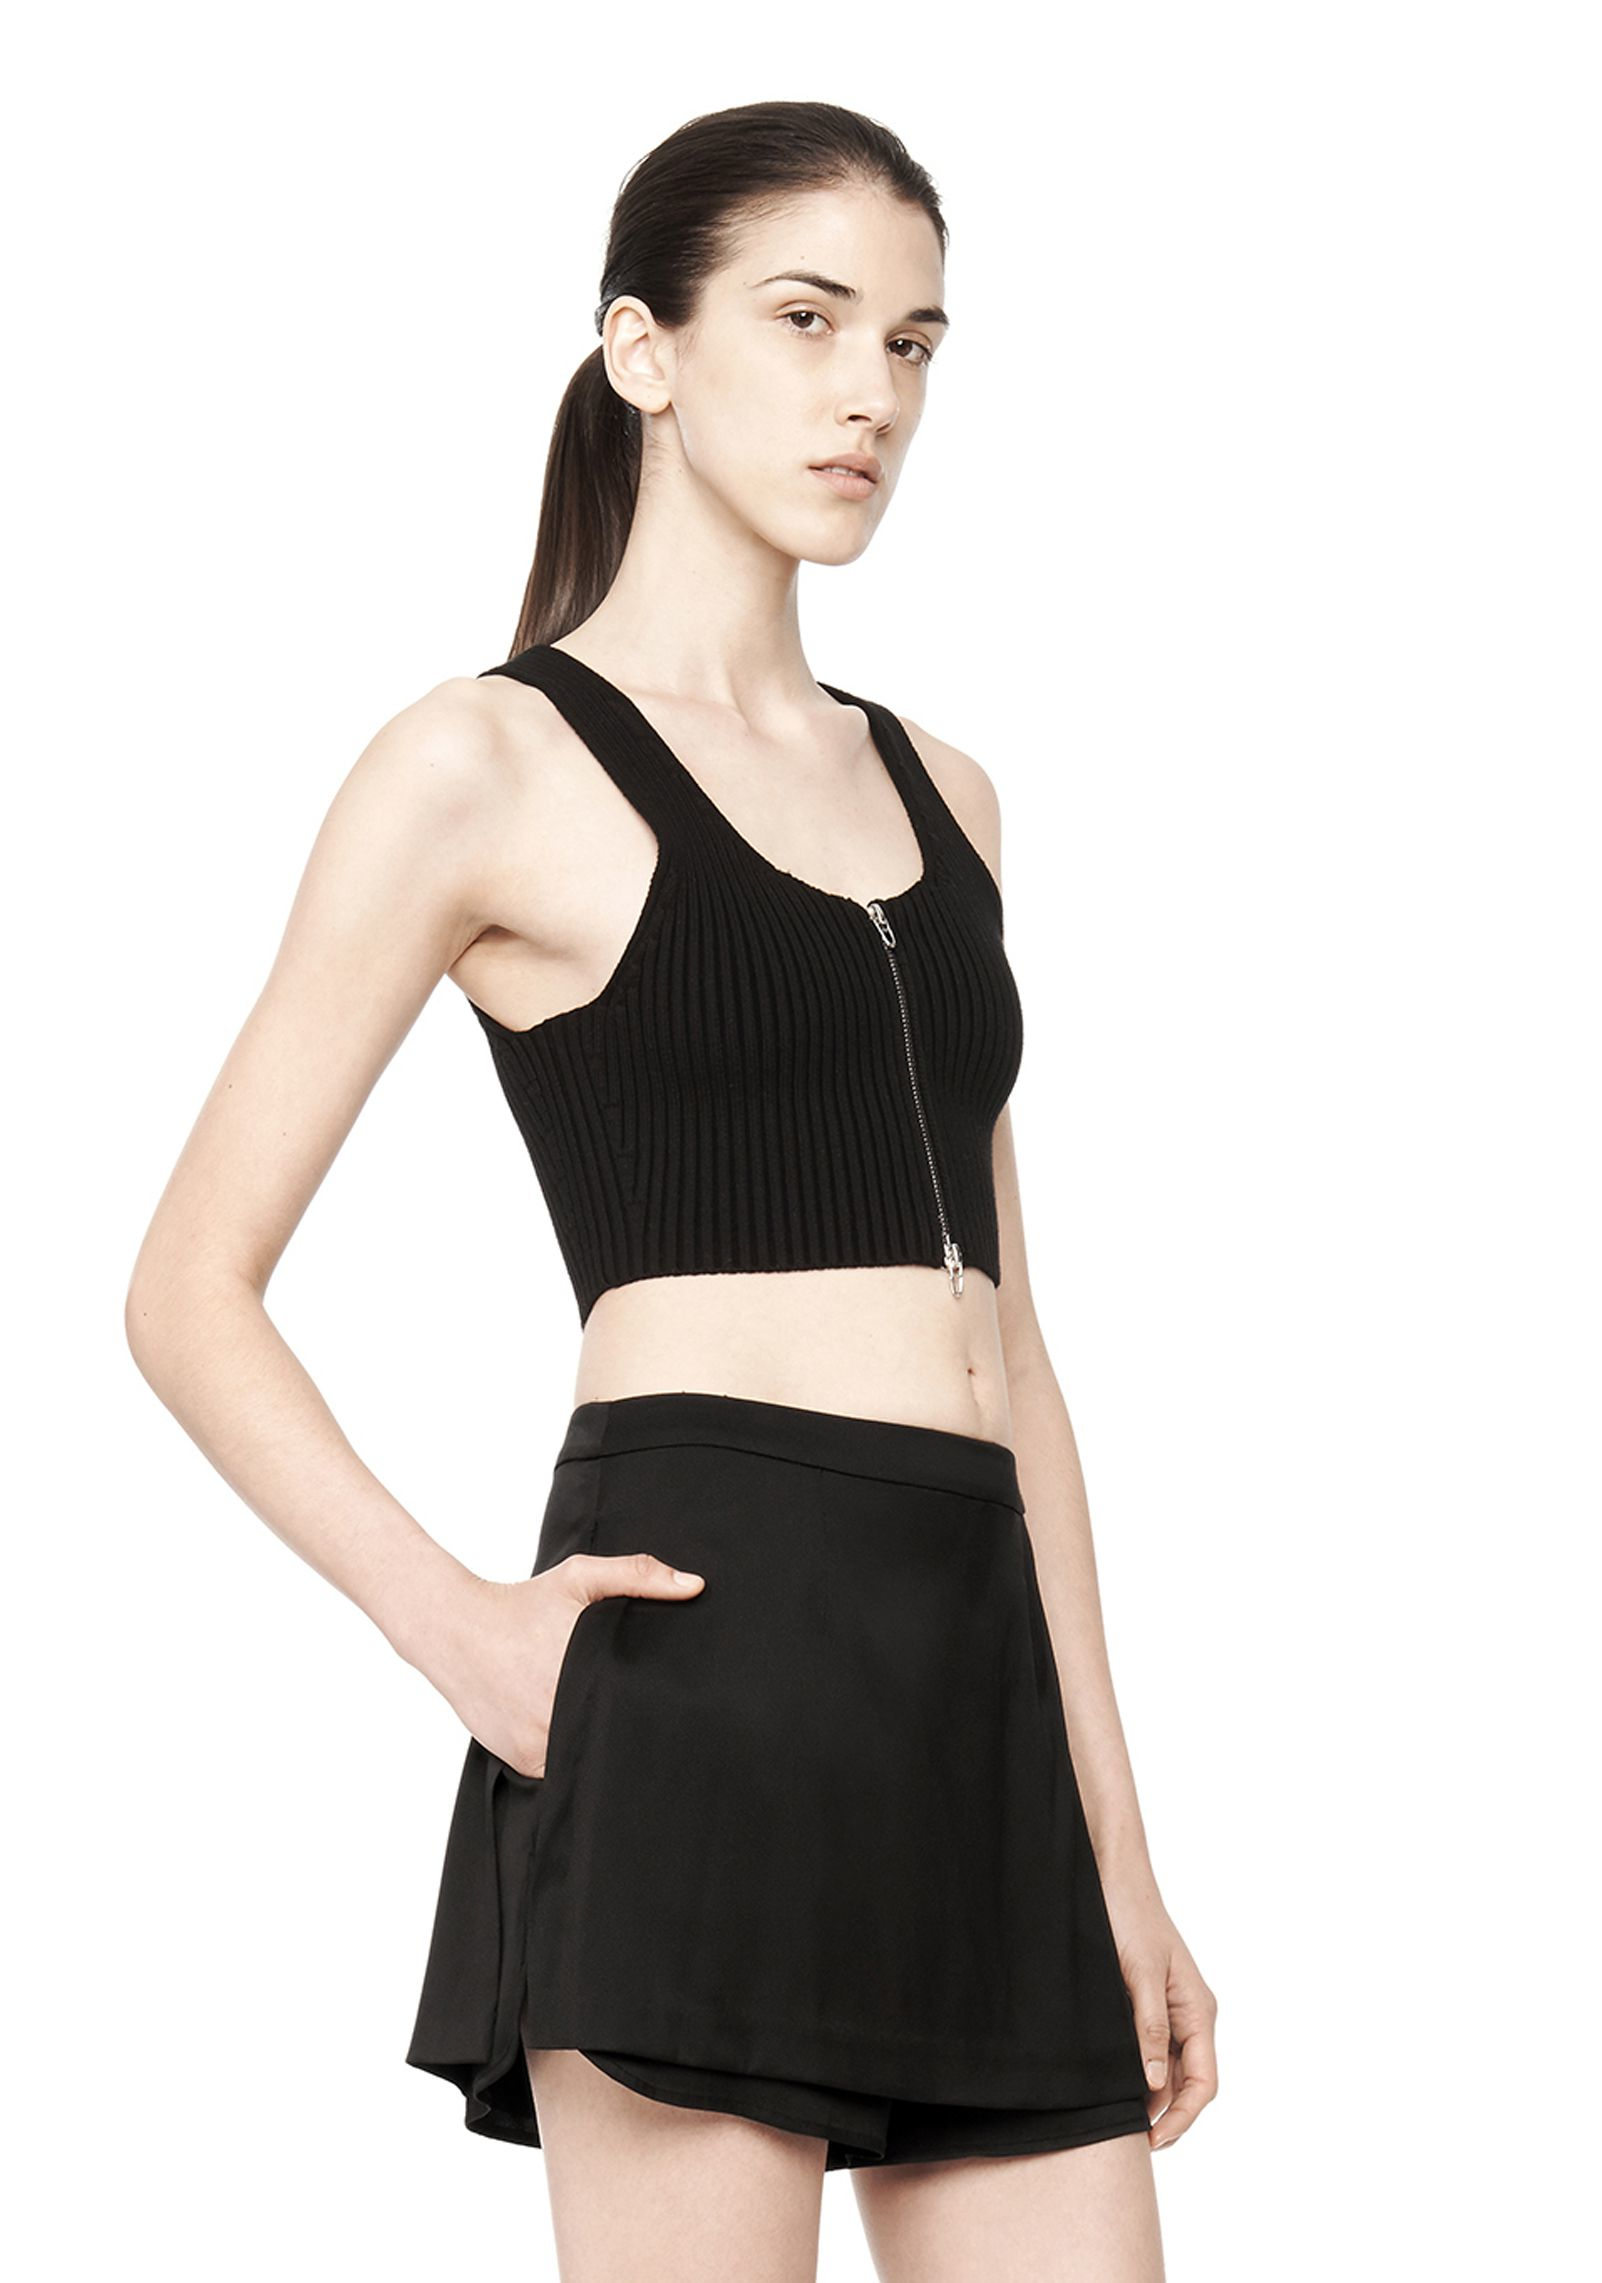 lyst t by alexander wang knit twill sleeveless top in black. Black Bedroom Furniture Sets. Home Design Ideas